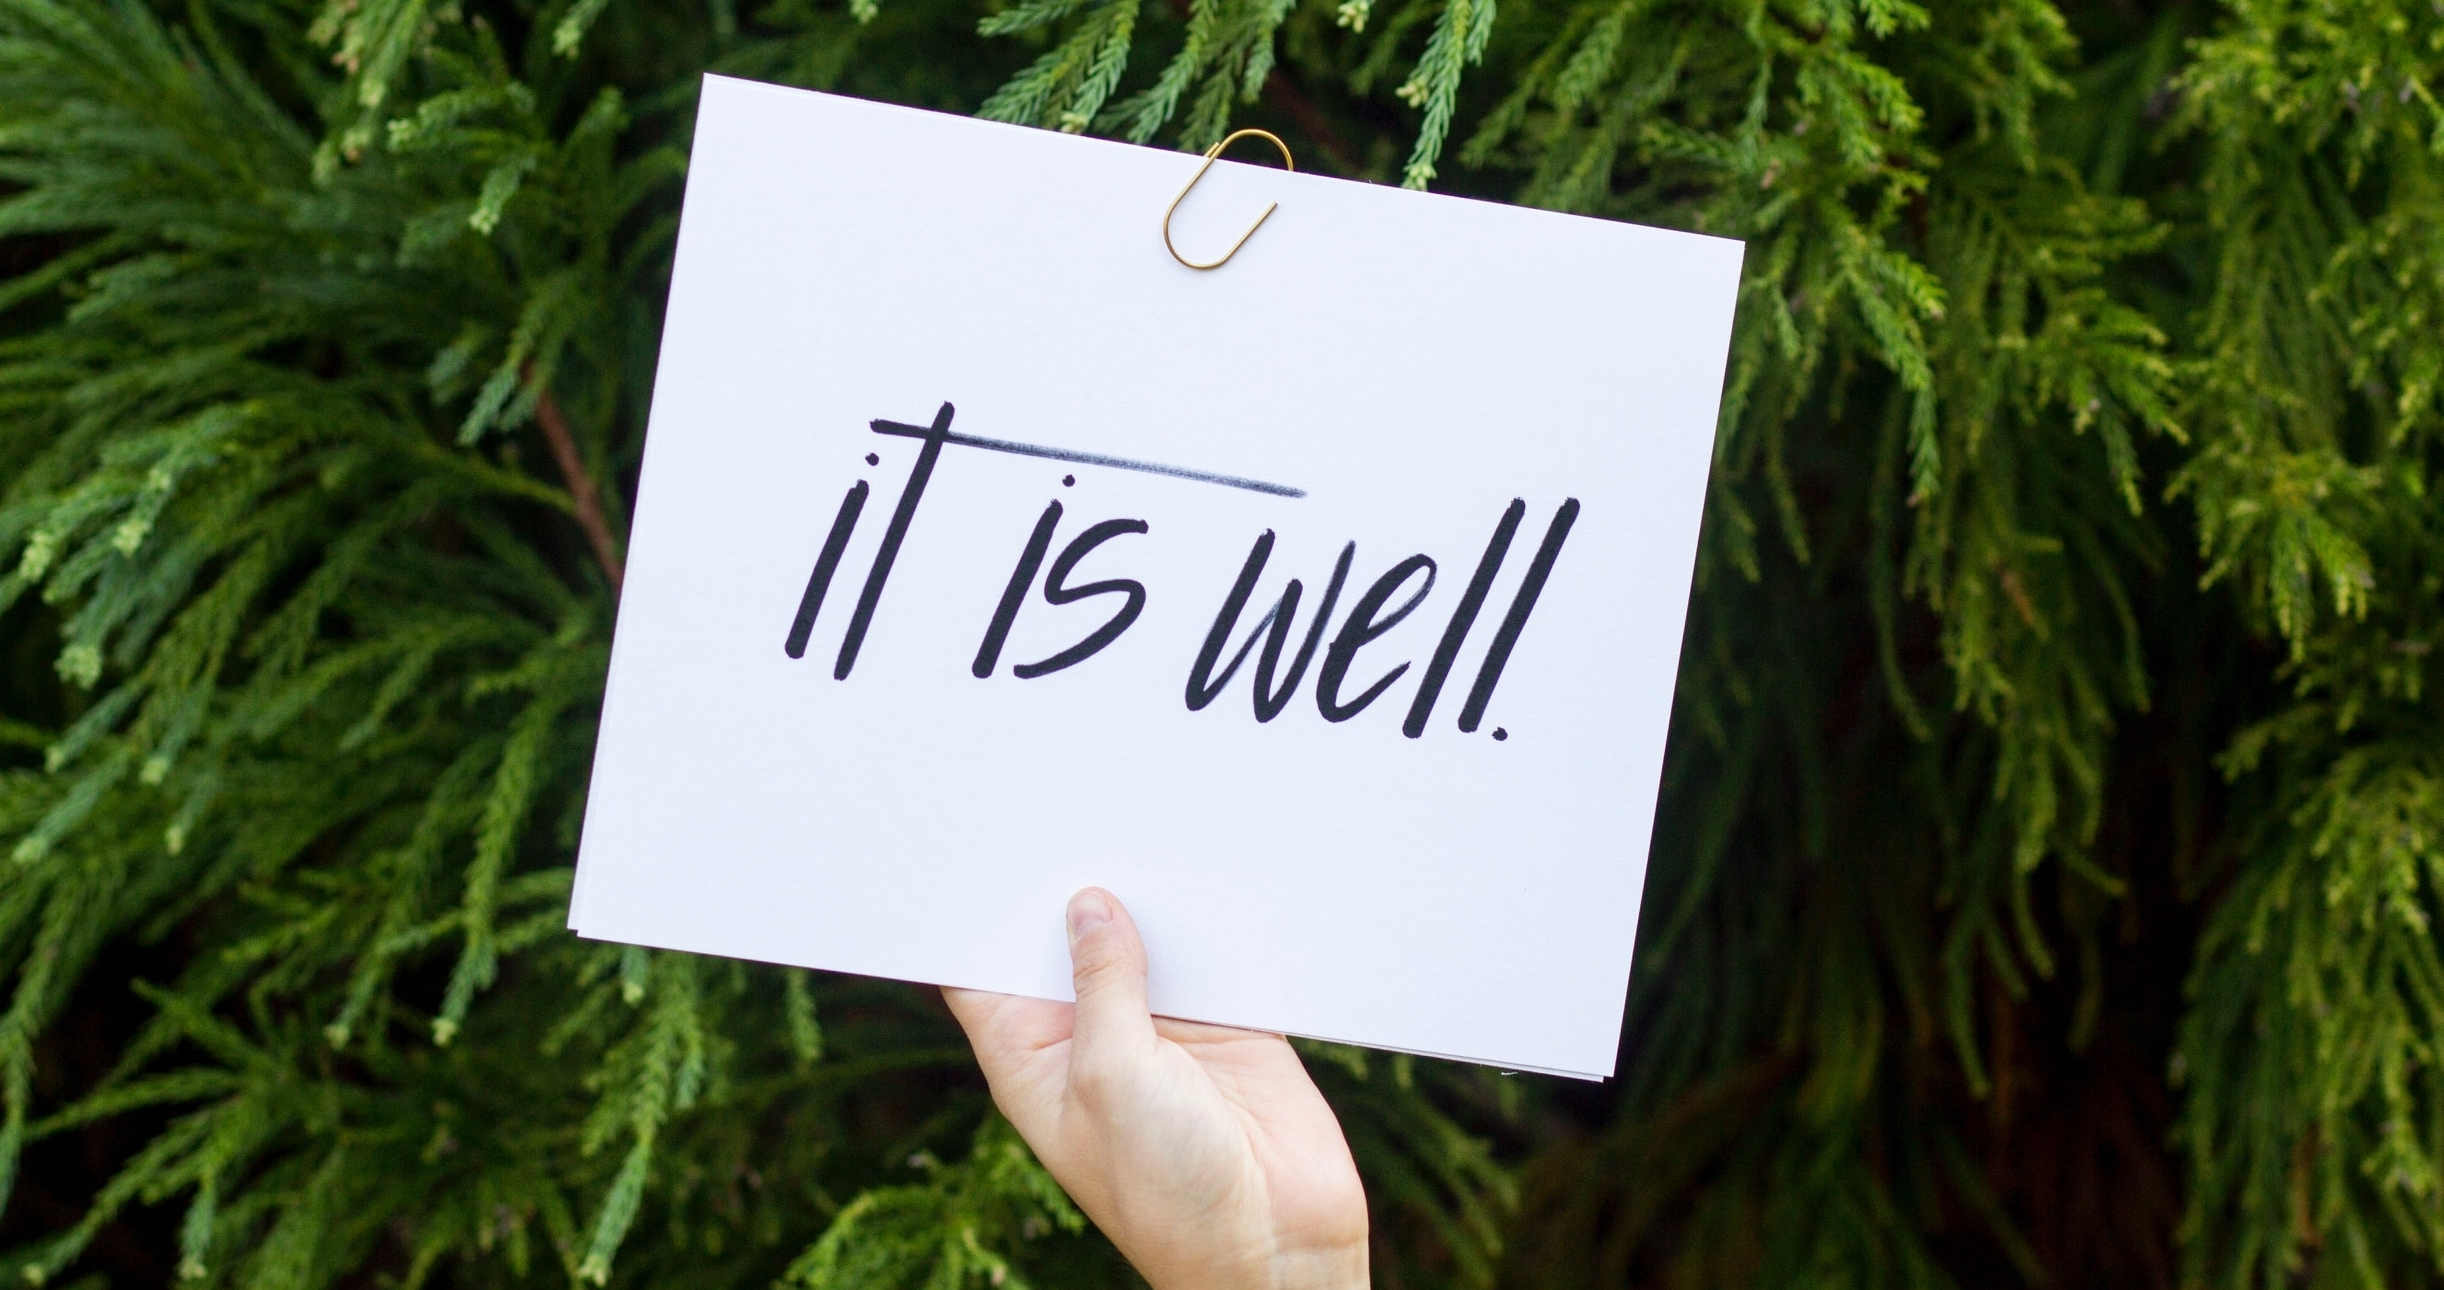 itiswell.